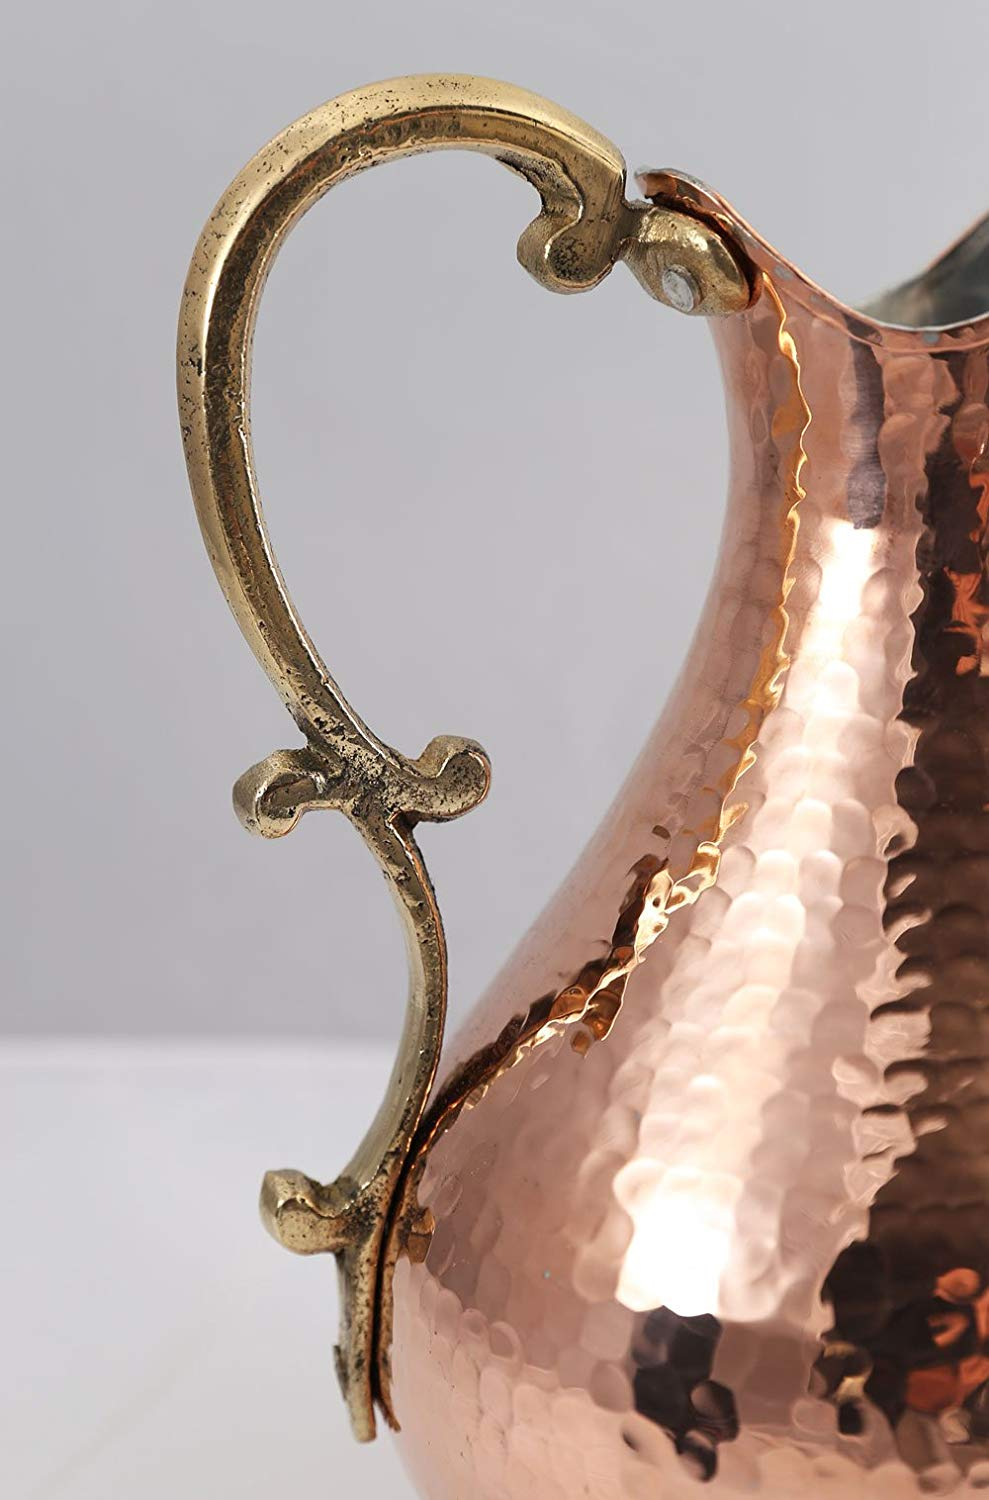 8- Premium Quality Copper Wine Pitcher Water Jug Wine Jug Pure Copper Pitcher Carafe Handmade , Hand Hammered Made in Turkey Drinkware 2 Lt (70 fl oz) Cristmas Gift Box Hand Carved Hand Crafted